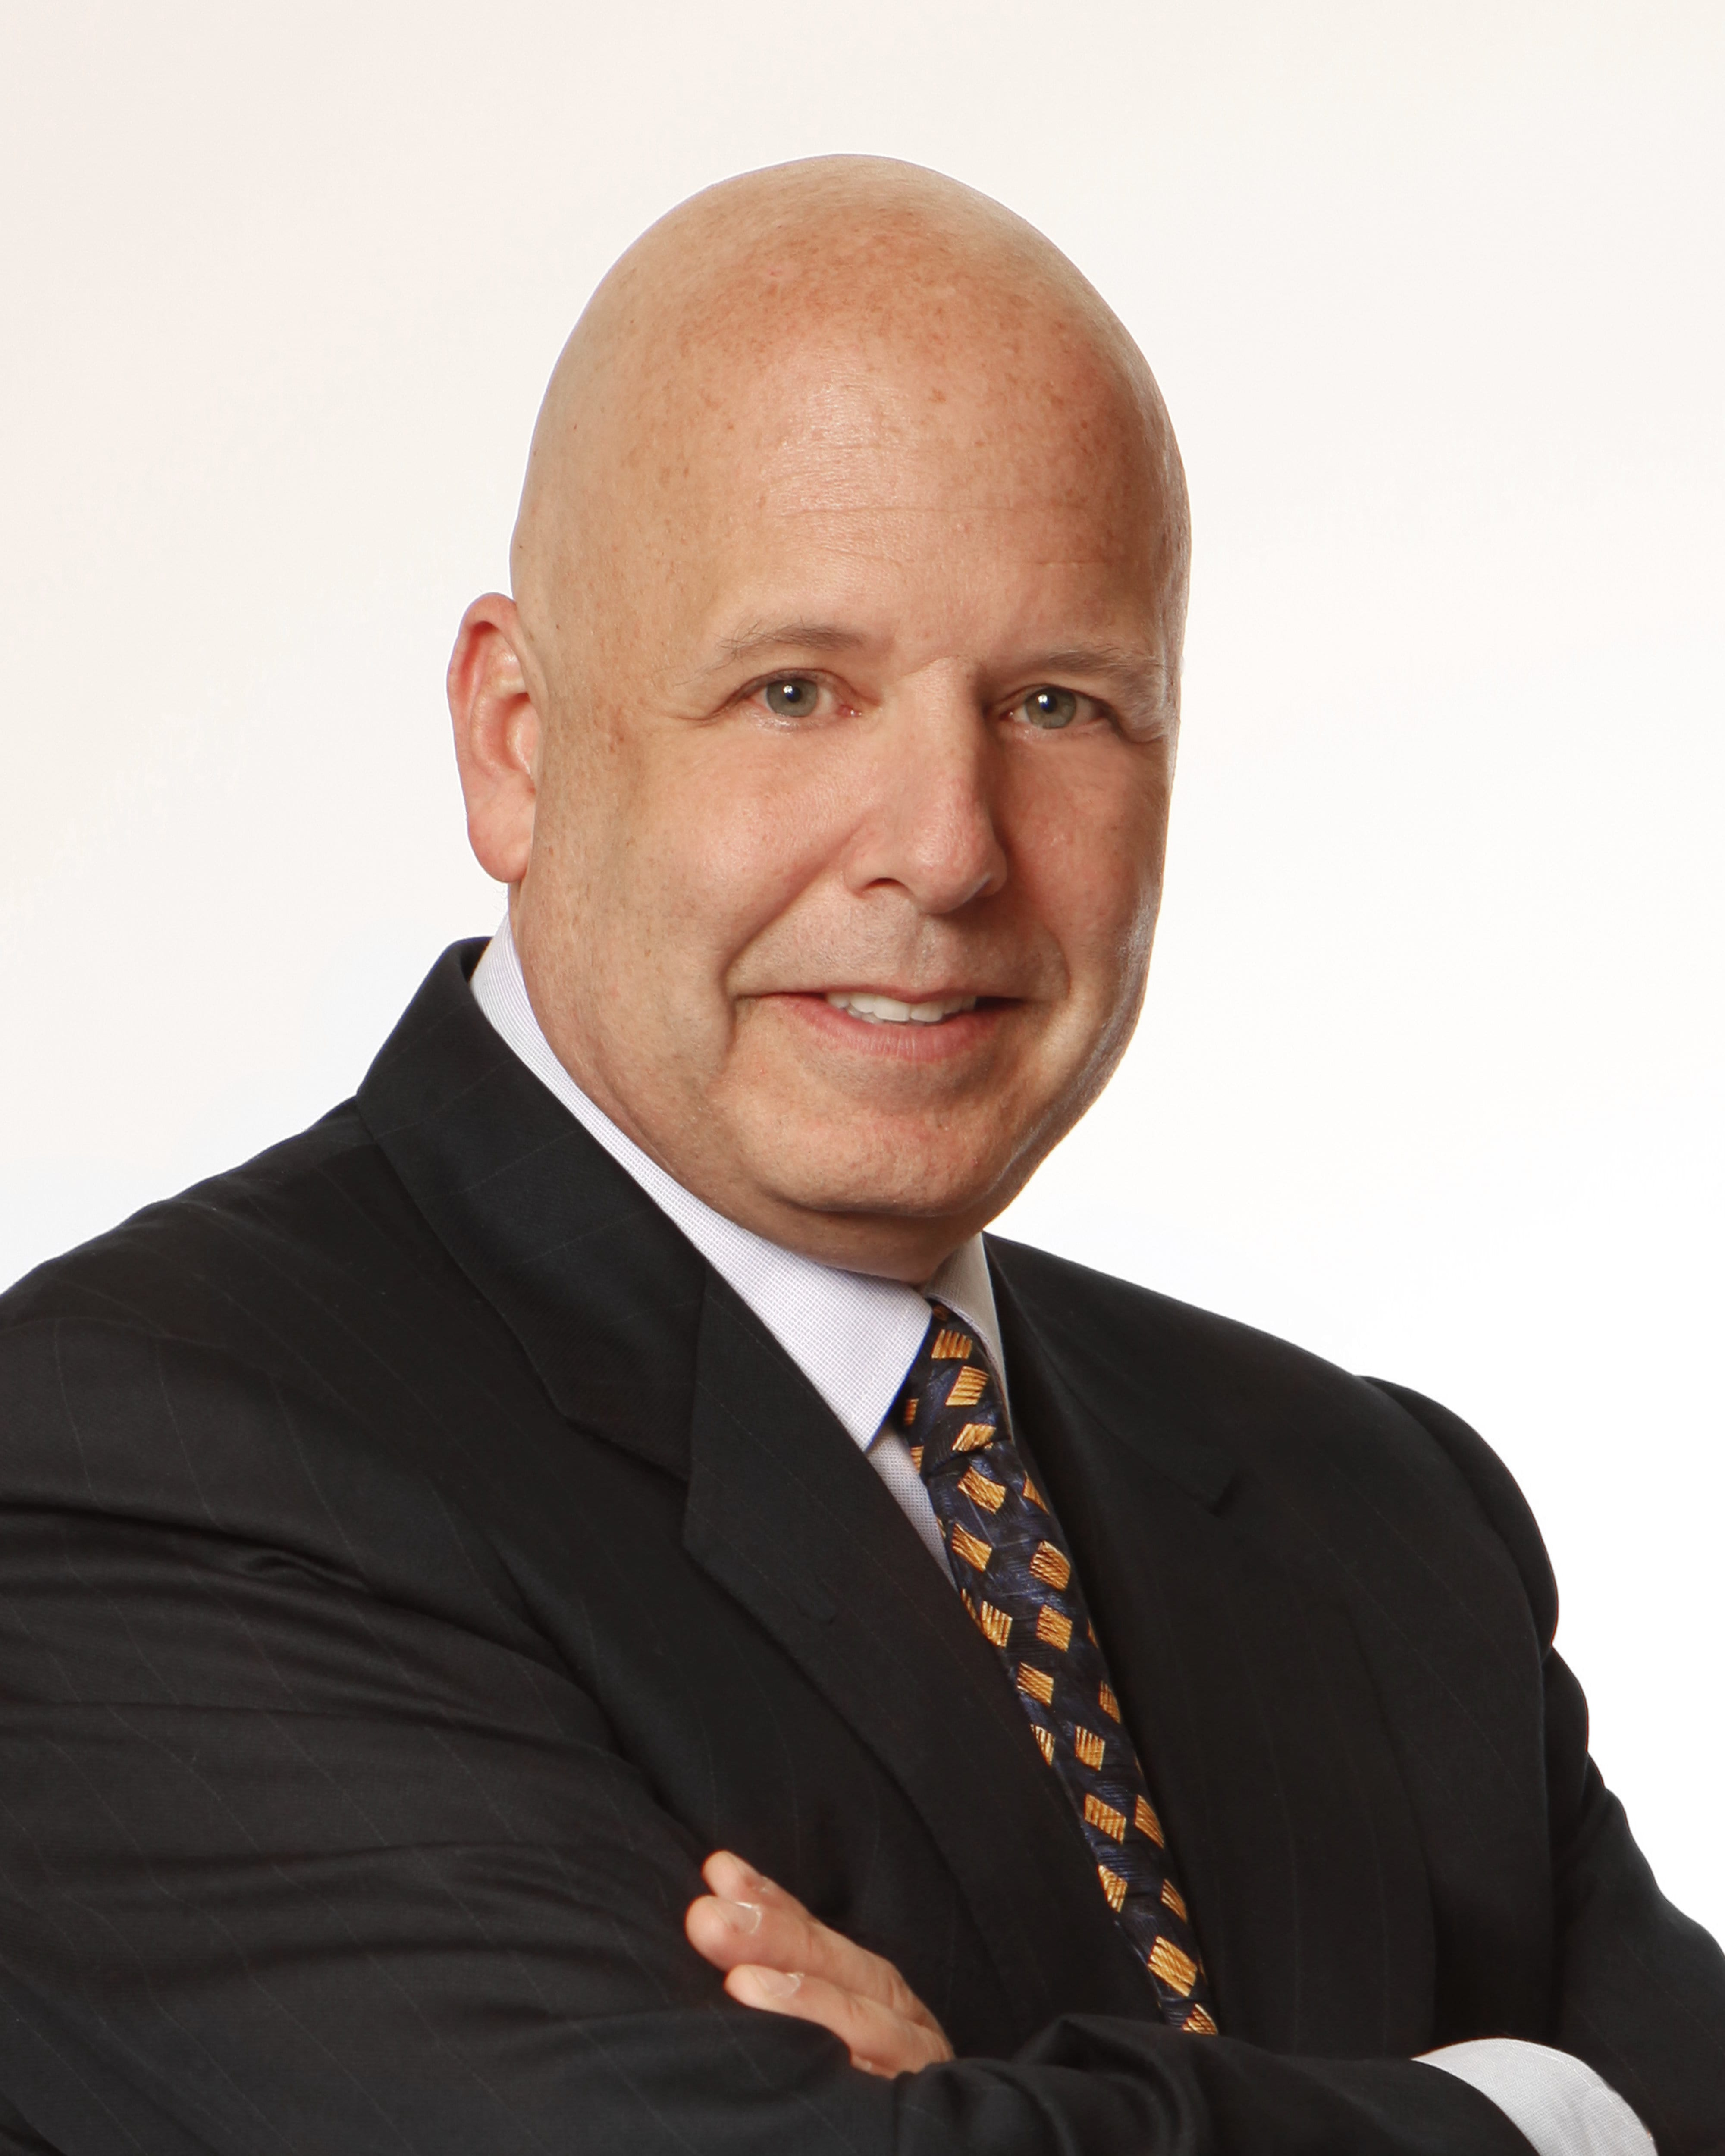 Shep Hyken Q&A: Why Every Service Executive Should Work a Day in the Field